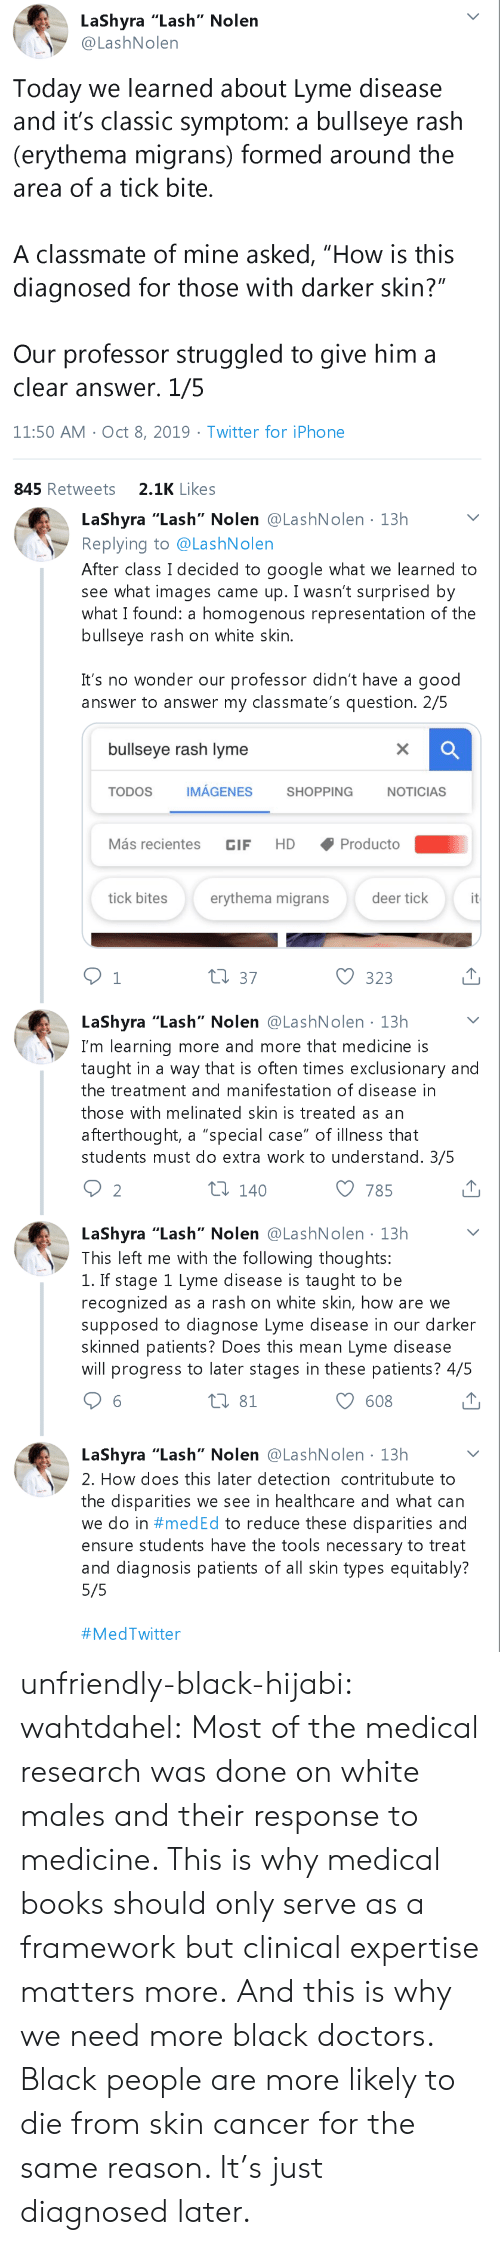 "Of Mine: LaShyra ""Lash"" Nolen  @LashNolen  Today we learned about Lyme disease  and it's classic symptom: a bullseye rash  (erythema migrans) formed around the  area of a tick bite.  A classmate of mine asked, ""How is this  diagnosed for those with darker skin?""  Our professor struggled to give him a  clear answer. 1/5  11:50 AM Oct 8, 2019 Twitter for iPho ne  2.1K Likes  845 Retweets   LaShyra ""Lash"" Nolen @LashNolen 13h  Replying to @LashNolen  After class I decided to google what we learned to  see what images came up. I wasn't surprised by  what I found: a homogenous representation of the  bullseye rash on white skin.  .  It's no wonder our professor didn't have a good  answer to answer my classmate's question. 2/5  bullseye rash lyme  X  IMÁGENES  TODOS  SHOPPING  NOTICIAS  Más recientes  Producto  HD  GIF  it  tick bites  erythema migrans  deer tick  t1 37  1  323  LaShyra ""Lash"" Nolen @LashNolen 13h  I'm learning more and more that medicine is  taught in a way that is often times exclusionary and  the treatment and manifestation of disease in  those with melinated skin is treated as an  afterthought, a ""special case"" of illness that  students must do extra work to understand. 3/5  ti 140  2  785  LaShyra ""Lash"" Nolen @LashNolen 13h  This left me with the following thoughts:  1. If stage 1 Lyme disease is taught to be  recognized as a rash on white skin, how are we  supposed to diagnose Lyme disease in our darker  skinned patients? Does this mean Lyme disease  will progress to later stages in these patients? 4/5  t 81  608  LaShyra ""Lash"" Nolen @LashN olen 13h  2. How does this later detection contritubute to  the disparities we see in healthcare and what can  we do in #med Ed to reduce these disparities and  ensure students have the tools necessary to treat  and diagnosis patients of all skin types equitably?  5/5  unfriendly-black-hijabi:  wahtdahel:  Most of the medical research was done on white males and their response to medicine. This is why medical books should only serve as a framework but clinical expertise matters more. And this is why we need more black doctors.     Black people are more likely to die from skin cancer for the same reason. It's just diagnosed later."